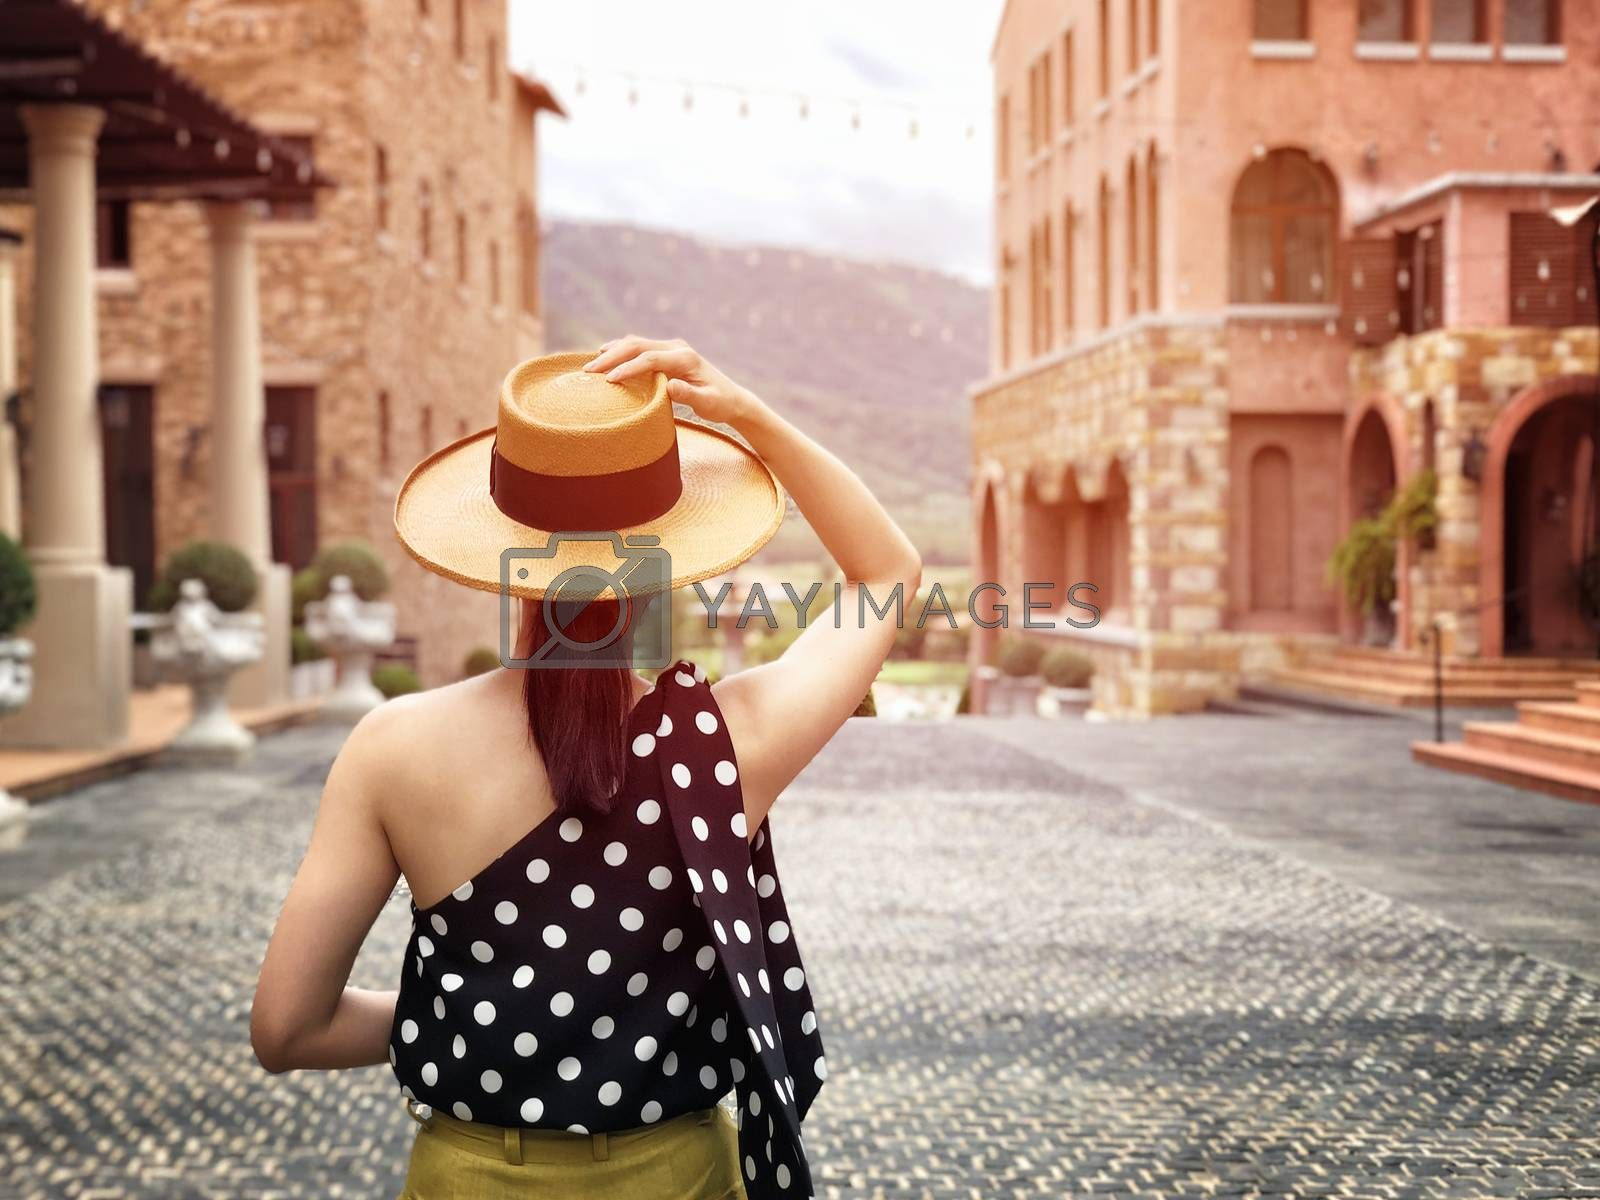 Woman wearing a planter panama hat visiting an Italian style village in summer